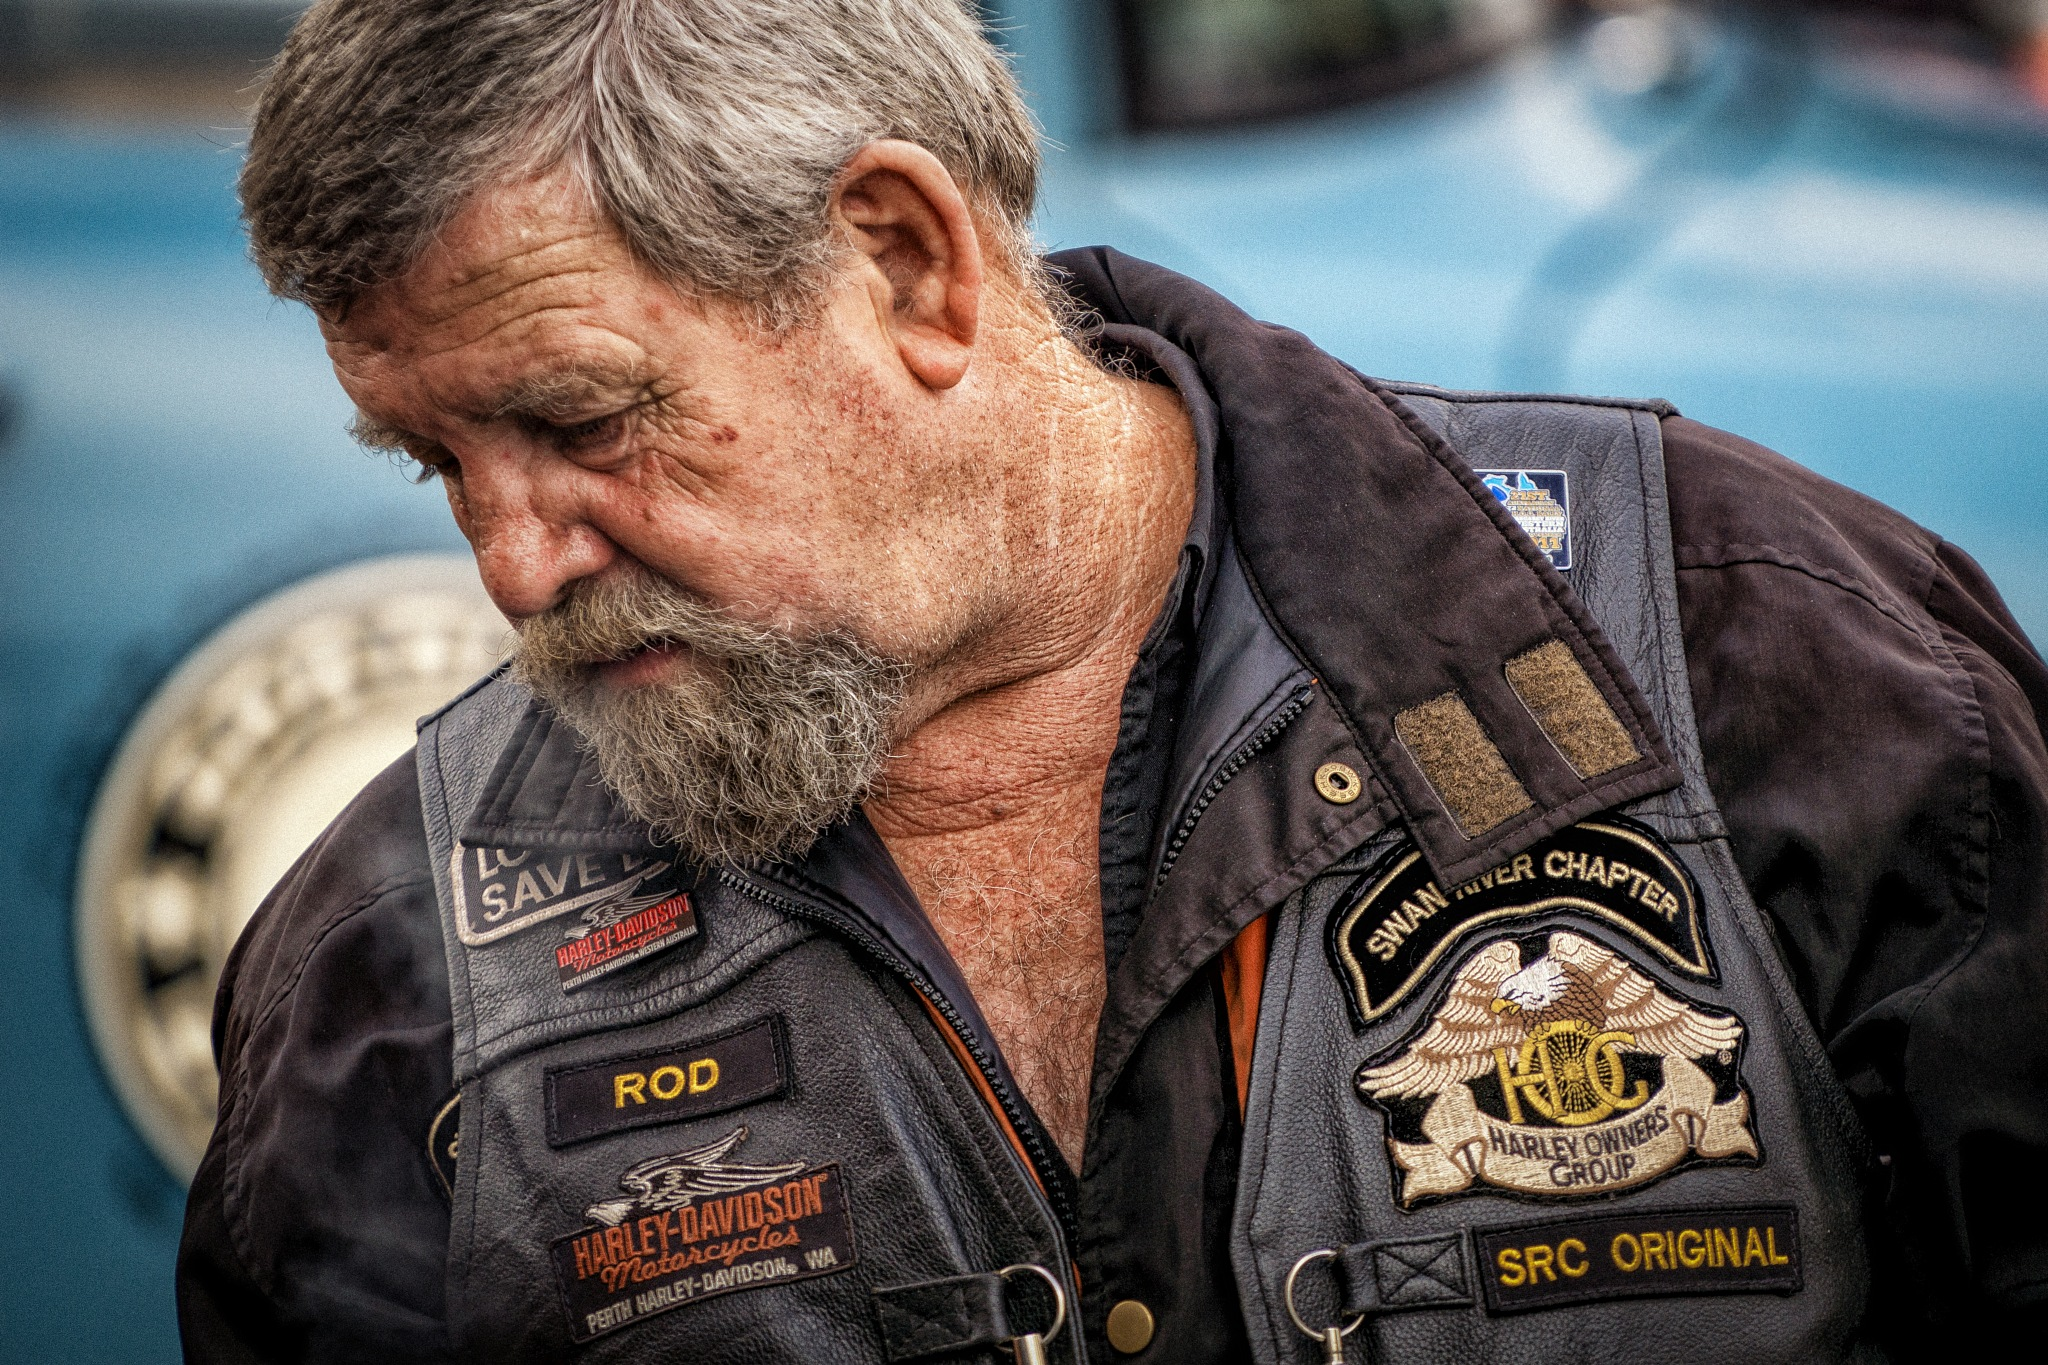 Biker, Perth. by Peter Holton